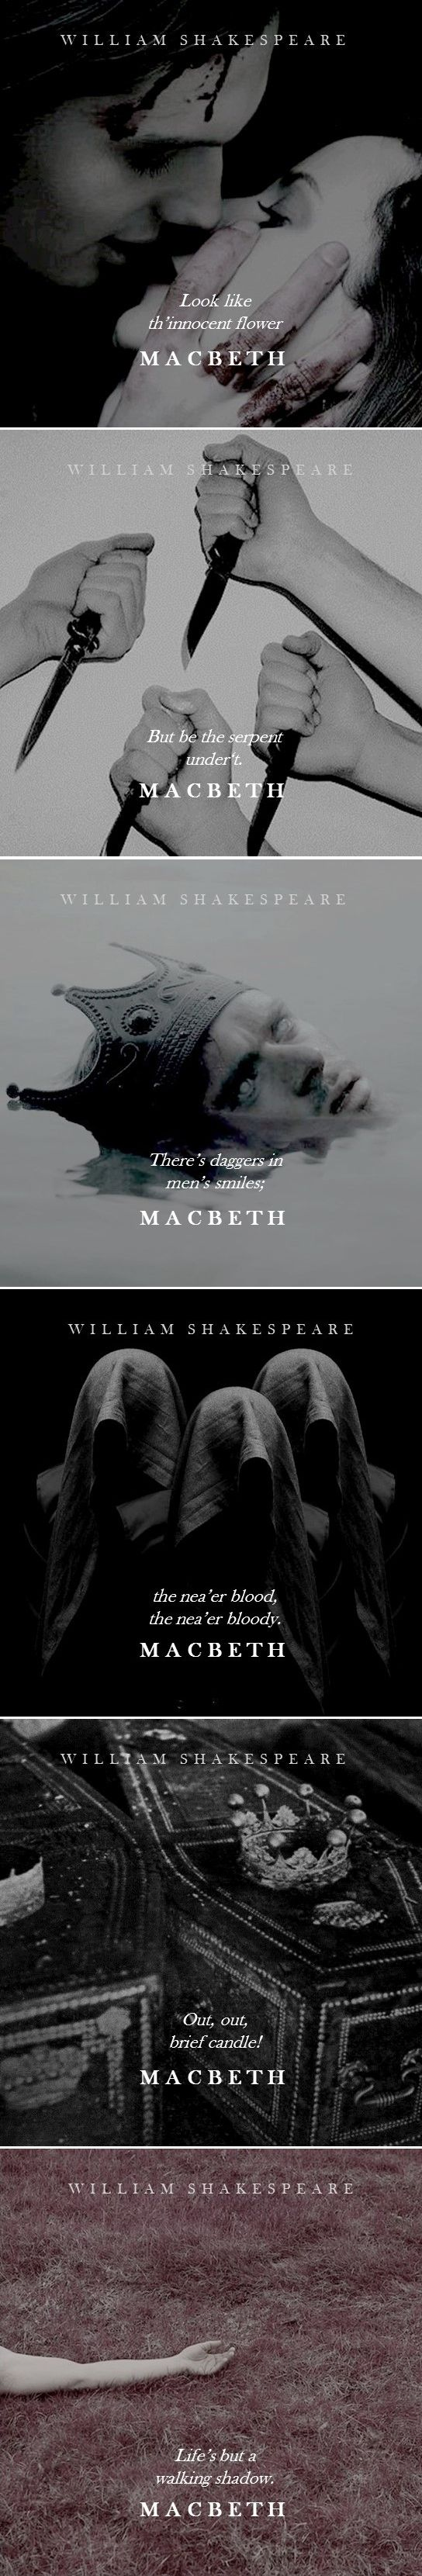 top 25 ideas about macbeth william shakespeare macbeth william shakespeare 1611